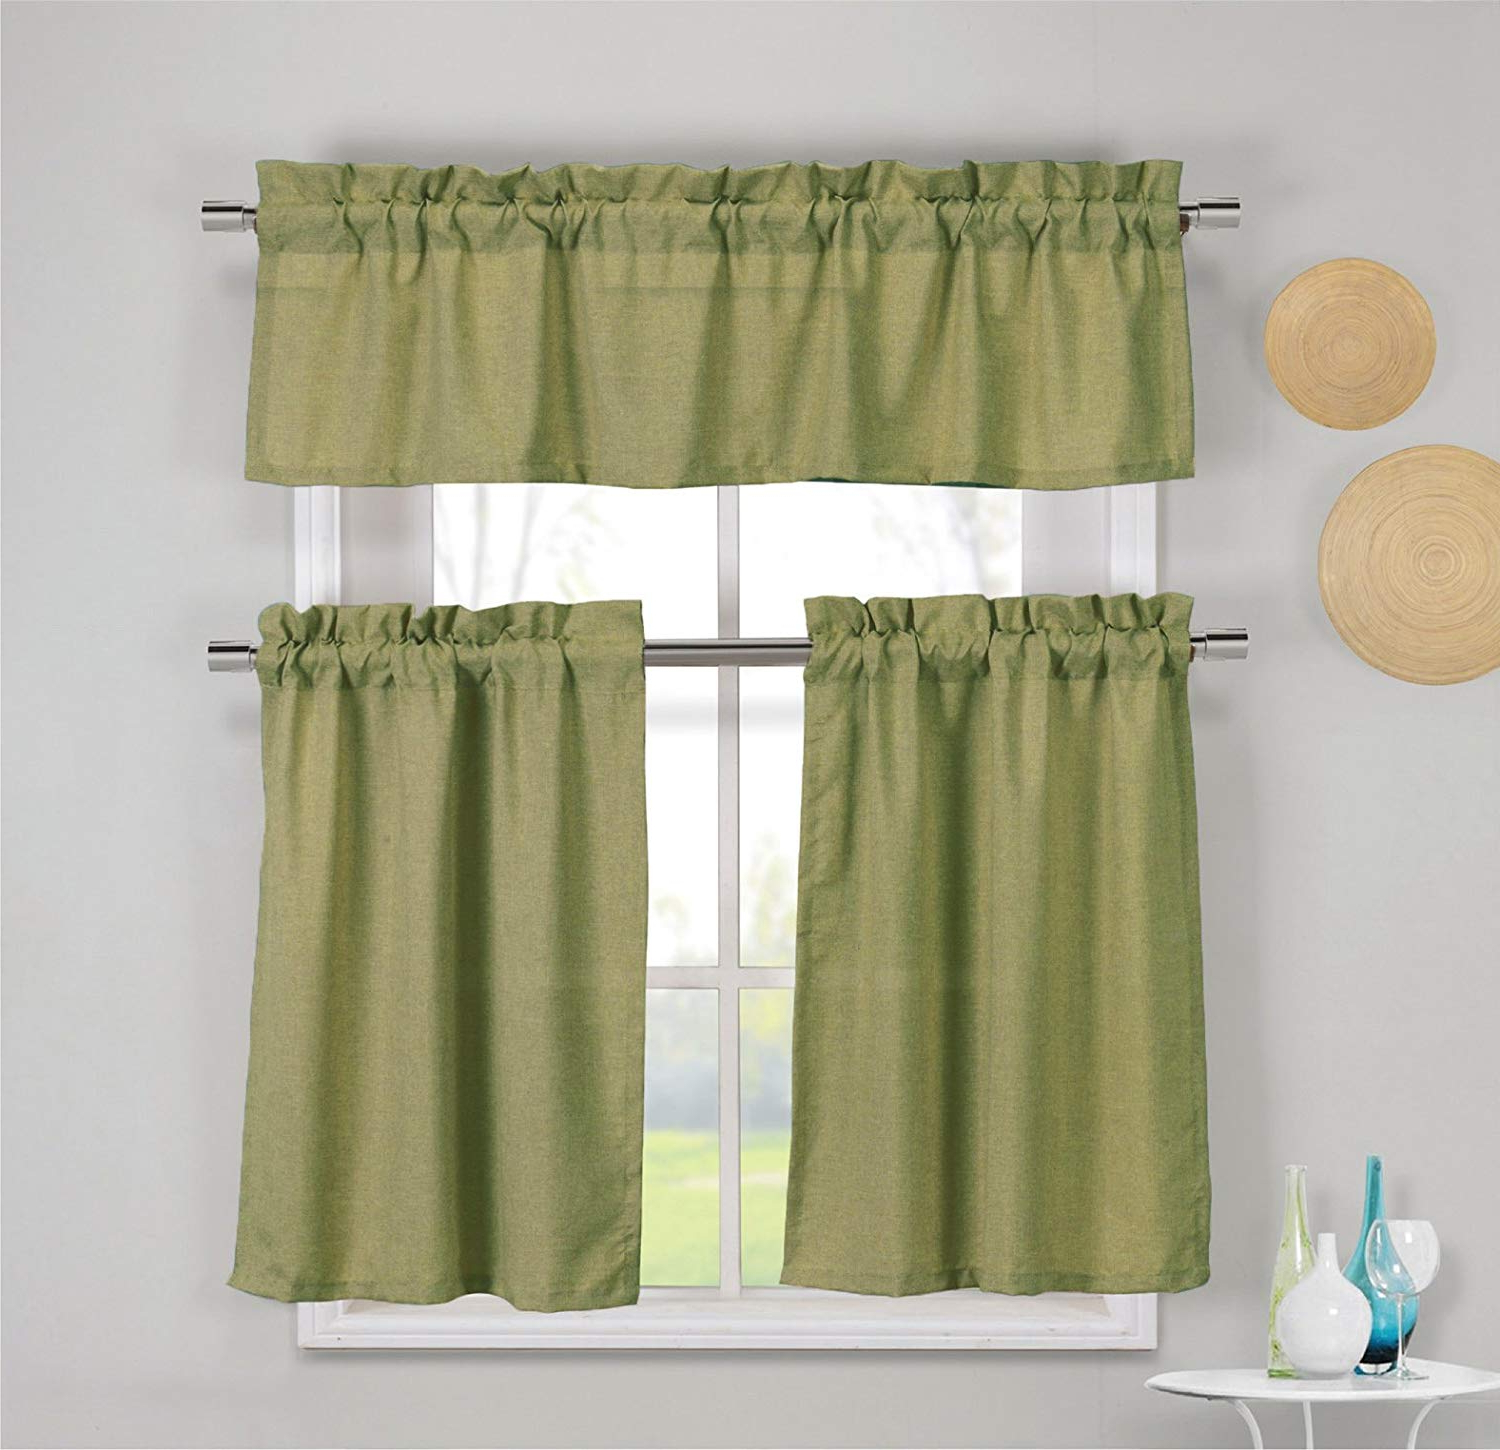 Most Current Solid Microfiber 3 Piece Kitchen Curtain Valance And Tiers Sets Regarding 3 Piece Faux Cotton Kitchen Window Curtain Panel Set With 1 Valance And 2  Tier Panel Curtains (Espresso Brown) (View 9 of 20)